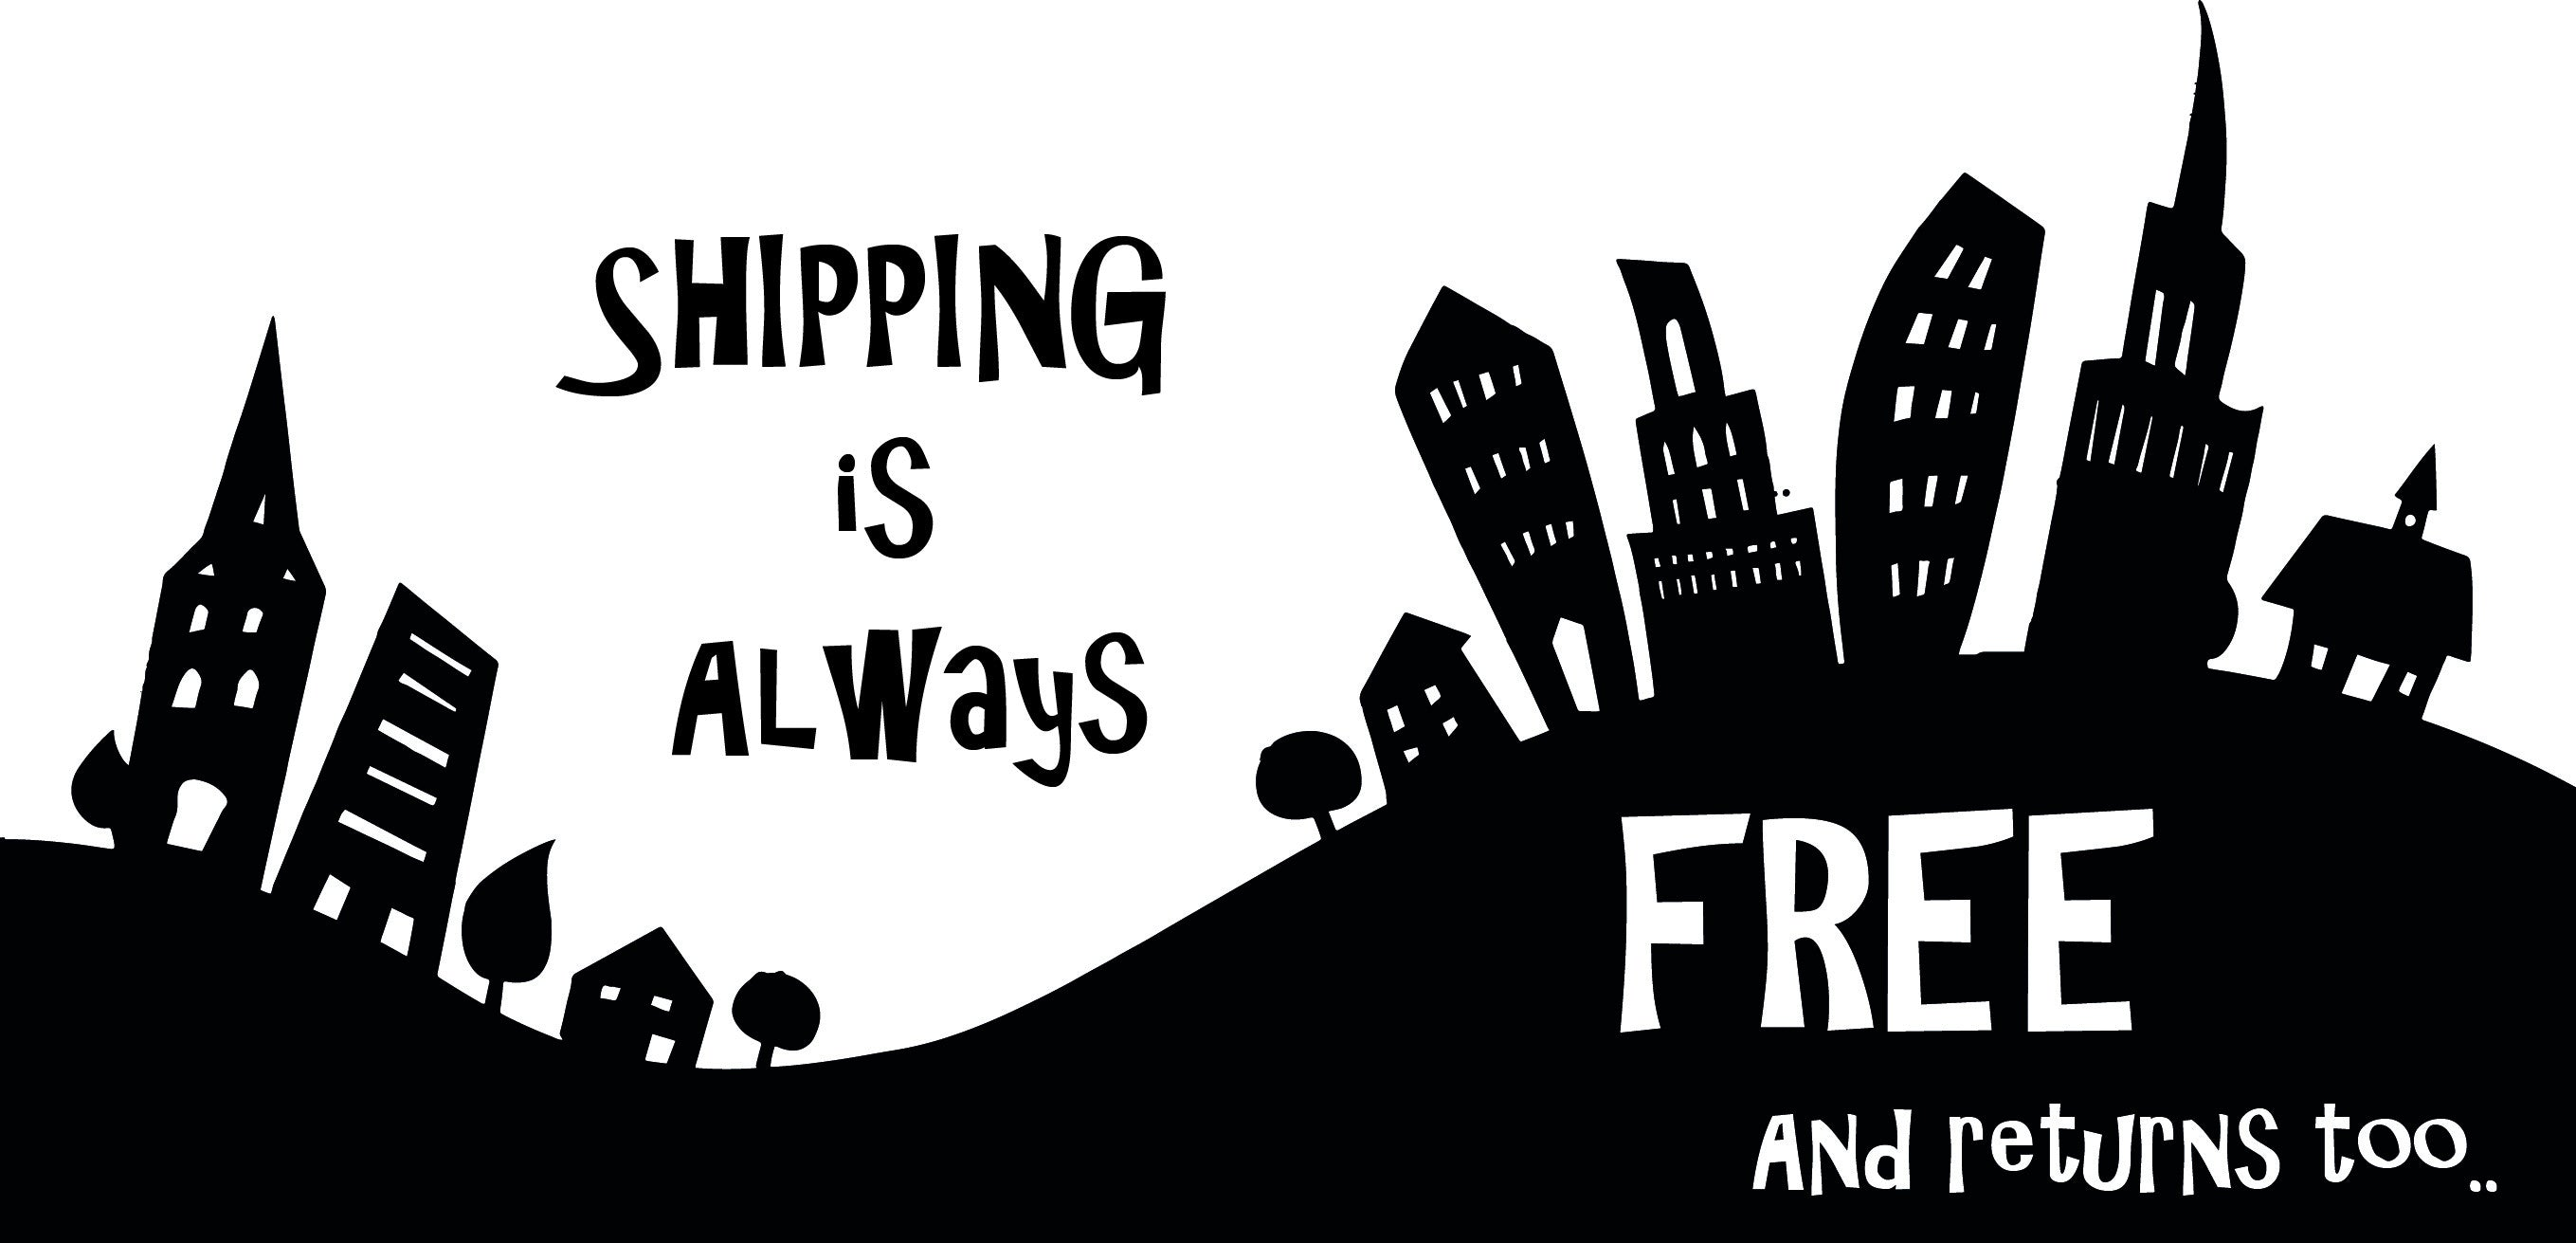 Free shipping and returns, what else?